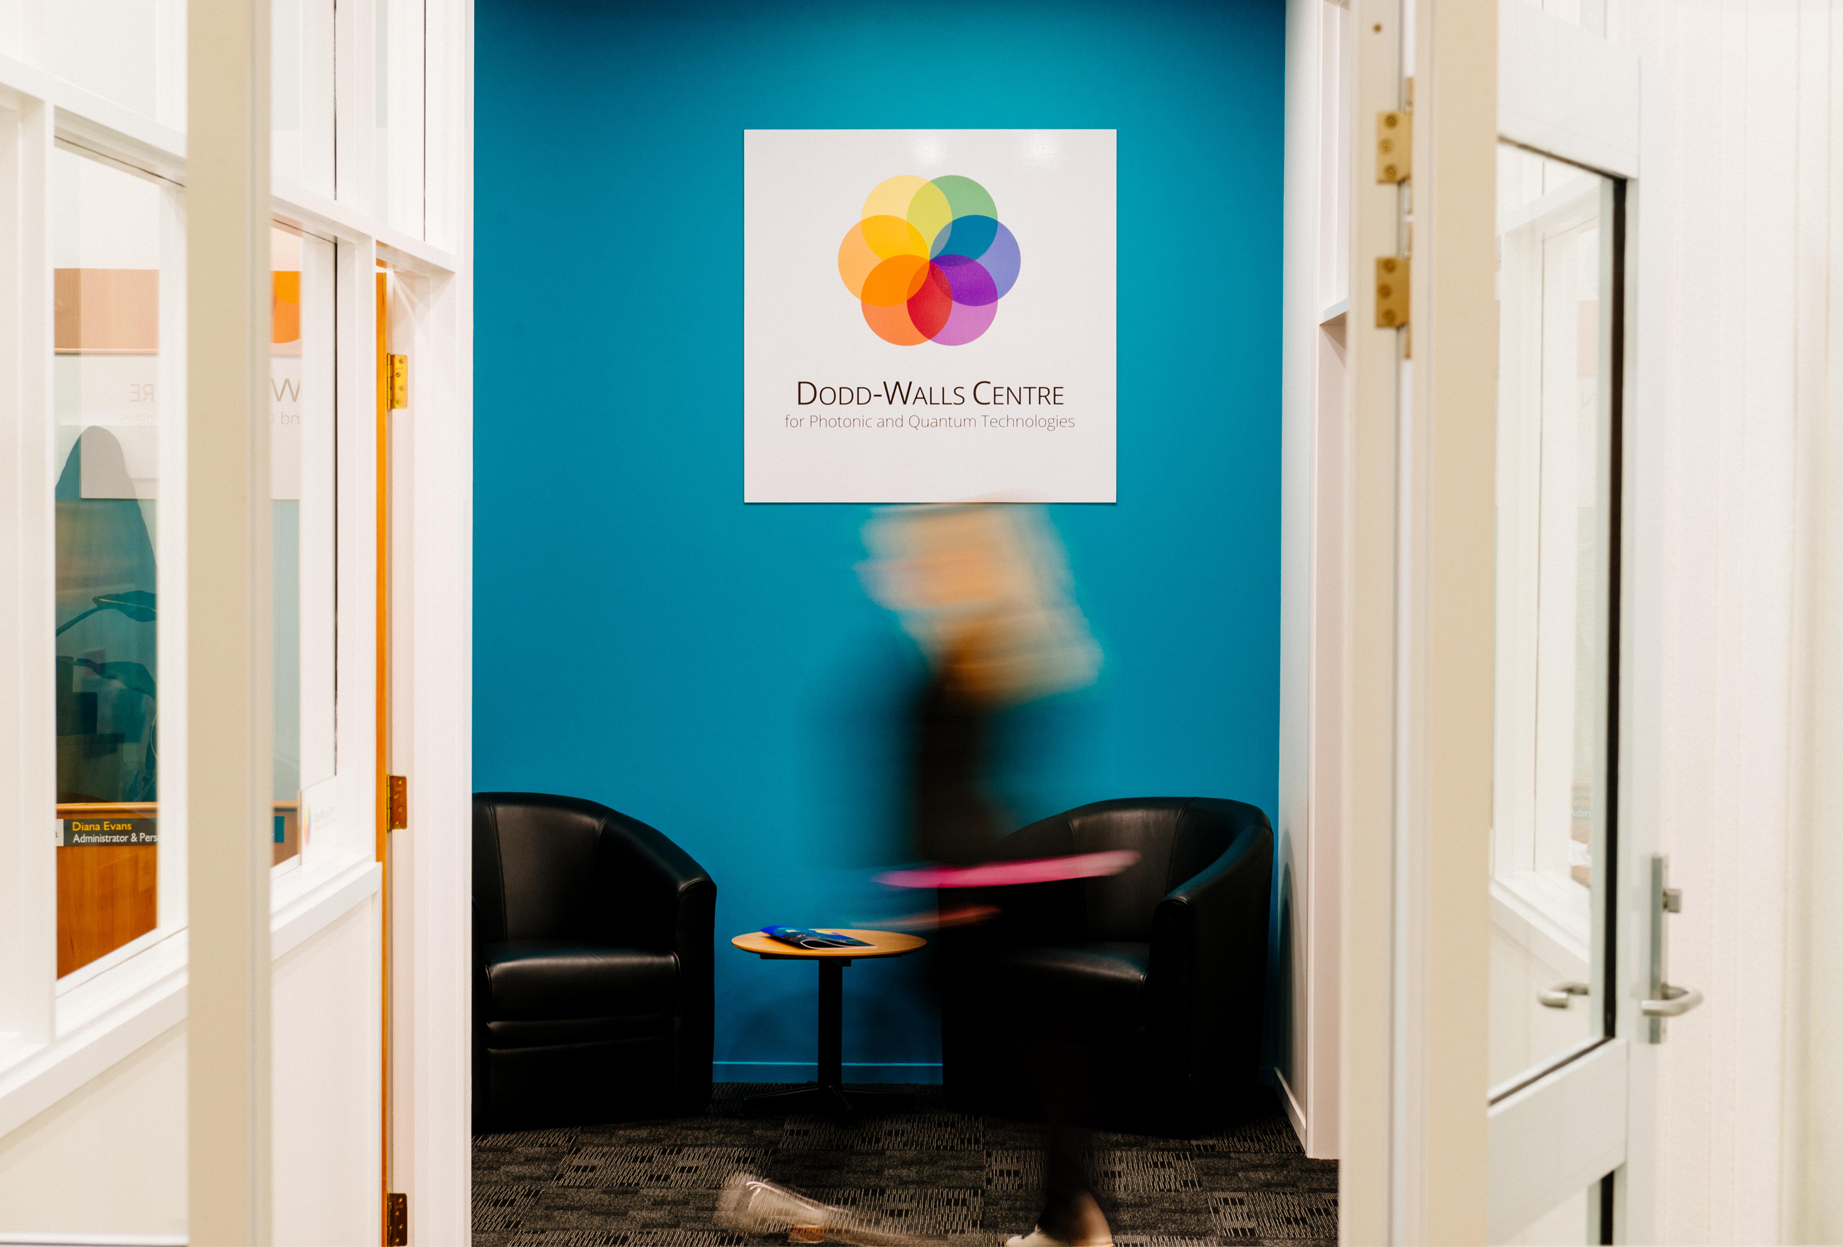 colourful image of Dodd-Walls Centre entrance